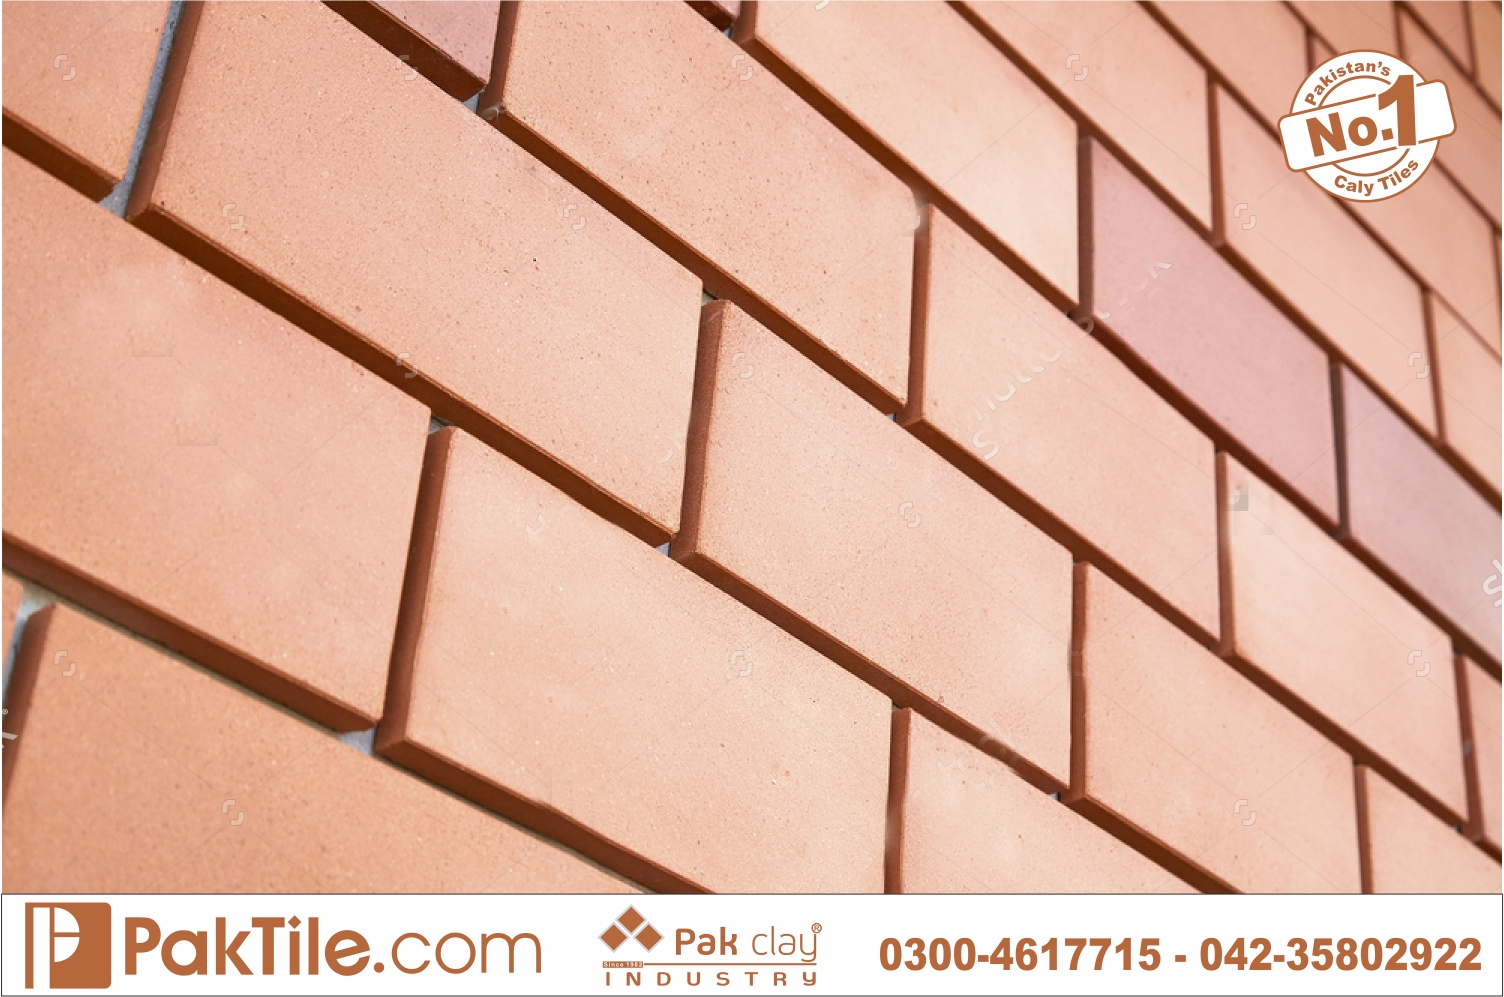 11 Pak Clay Tiles new design gas bricks price in pakistan images